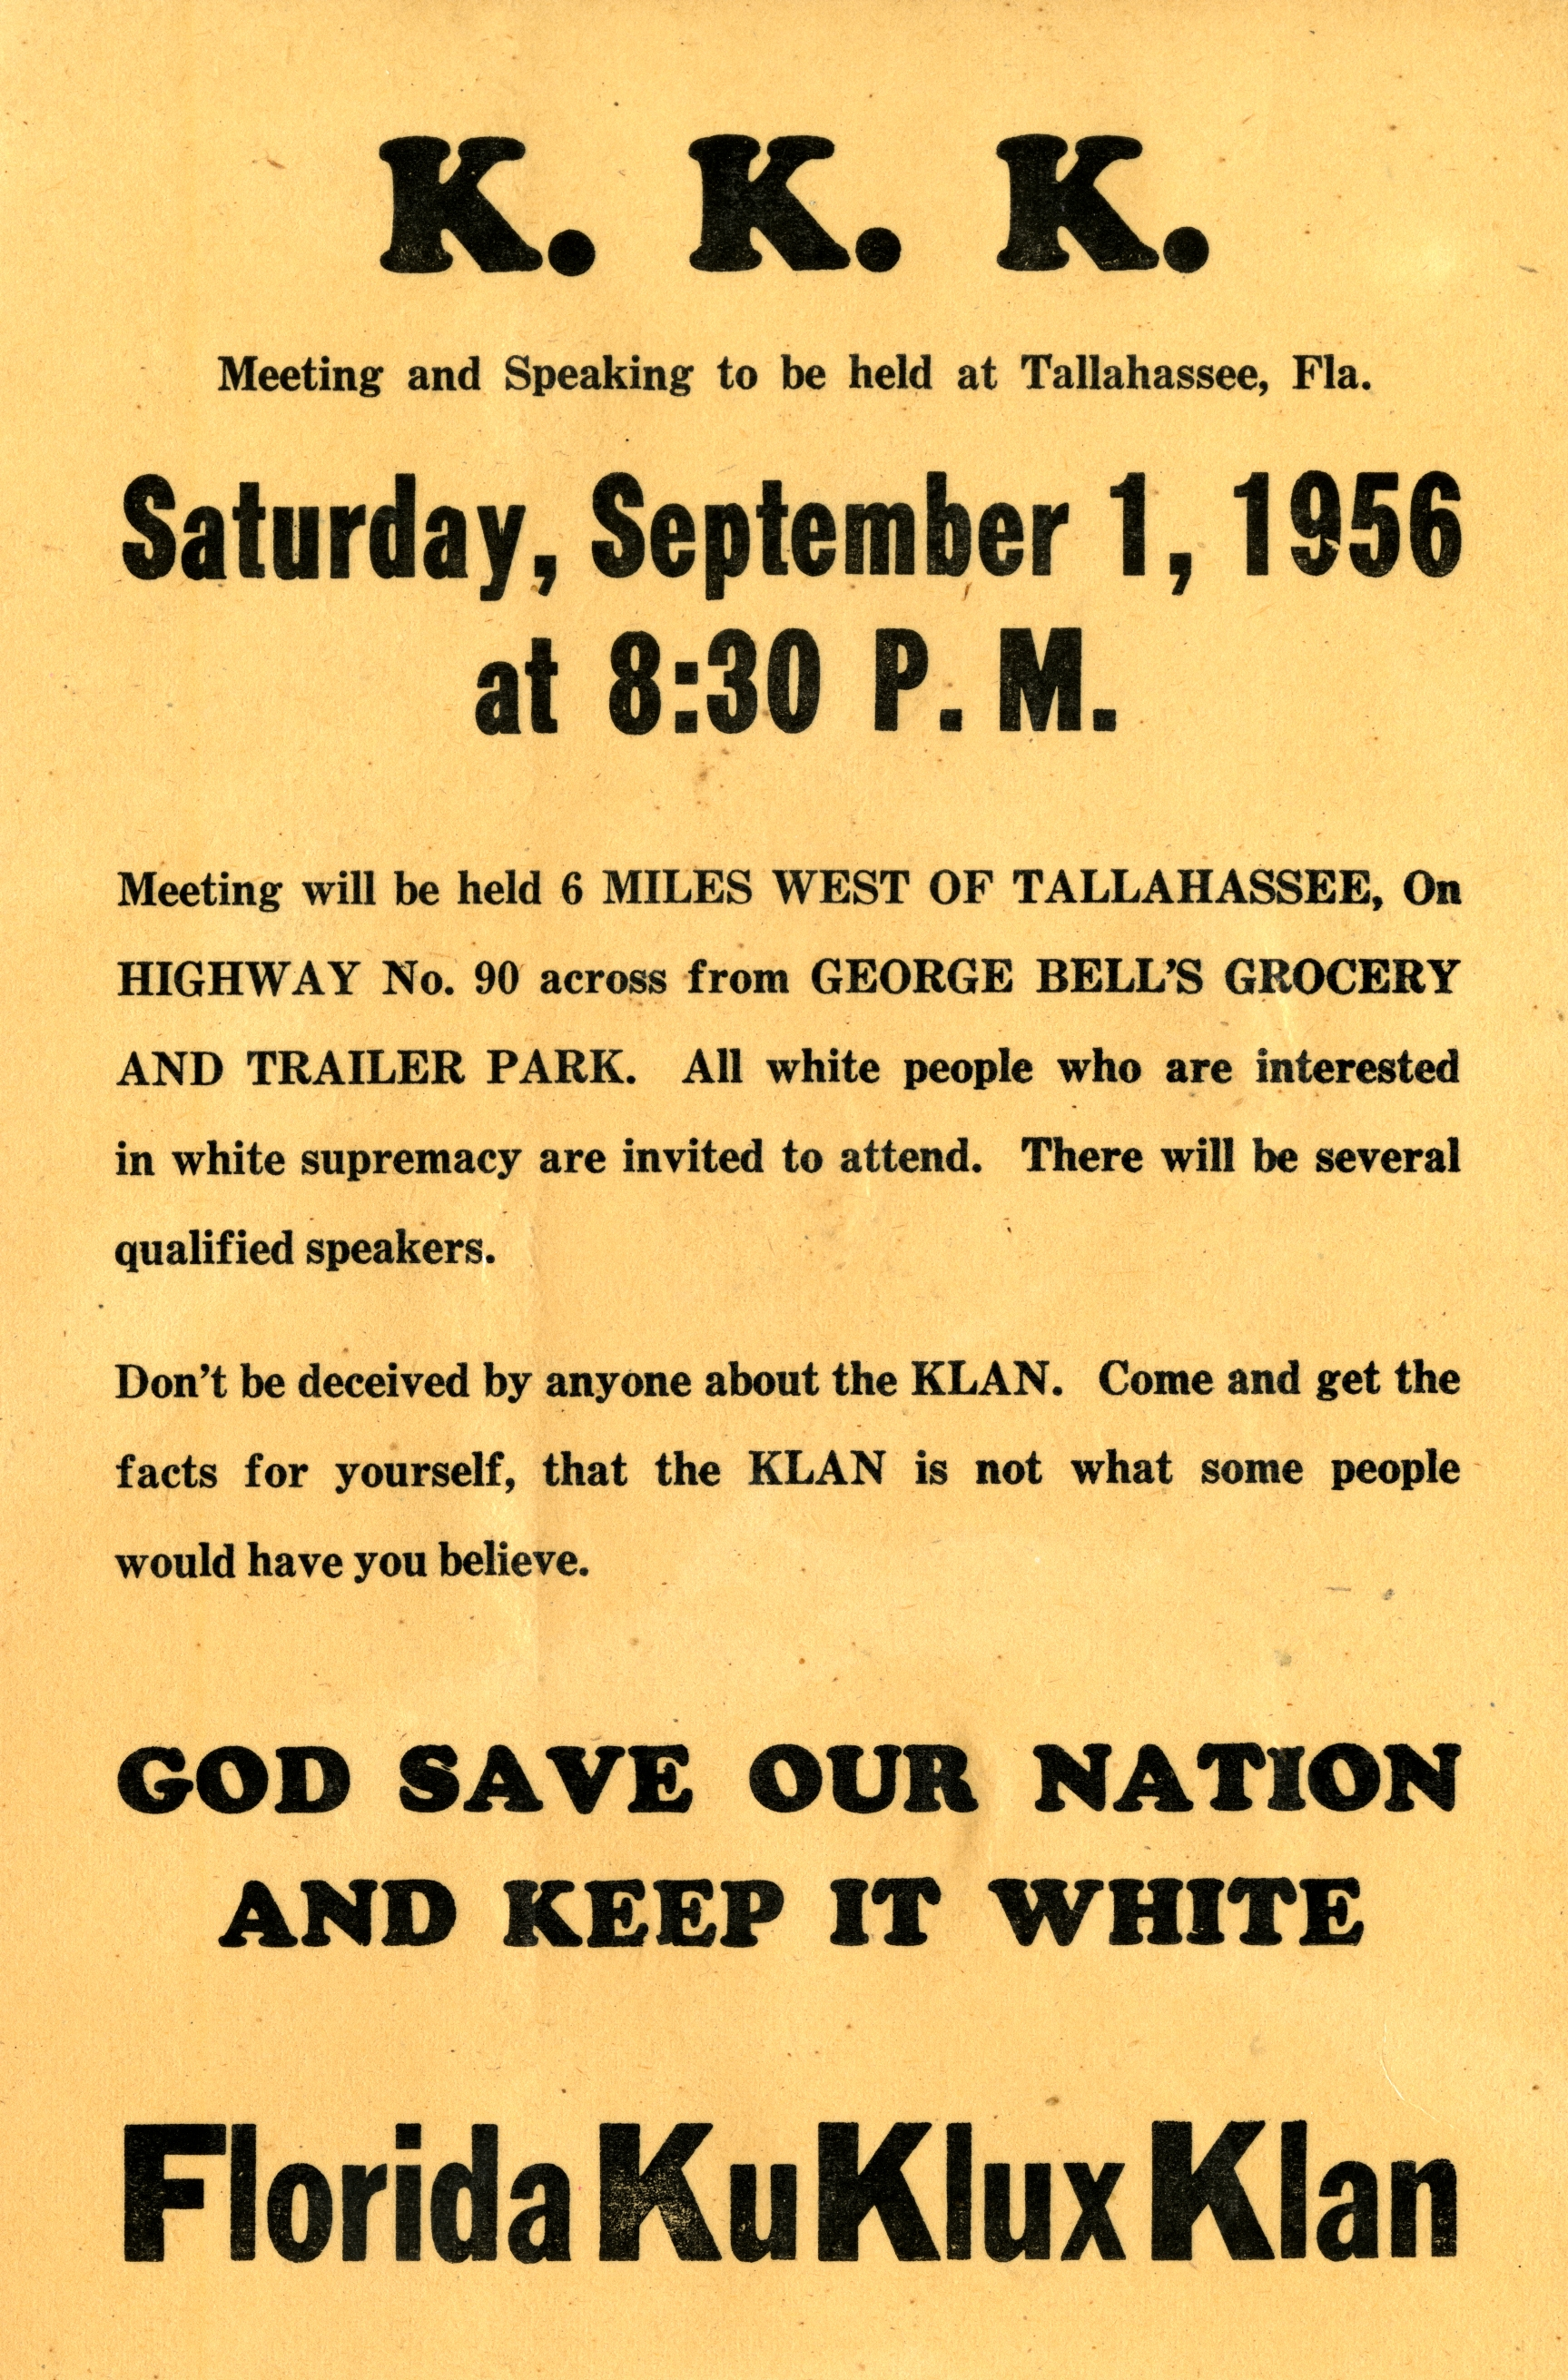 K.K.K. meeting and speaking to be held at Tallahassee, Fla.